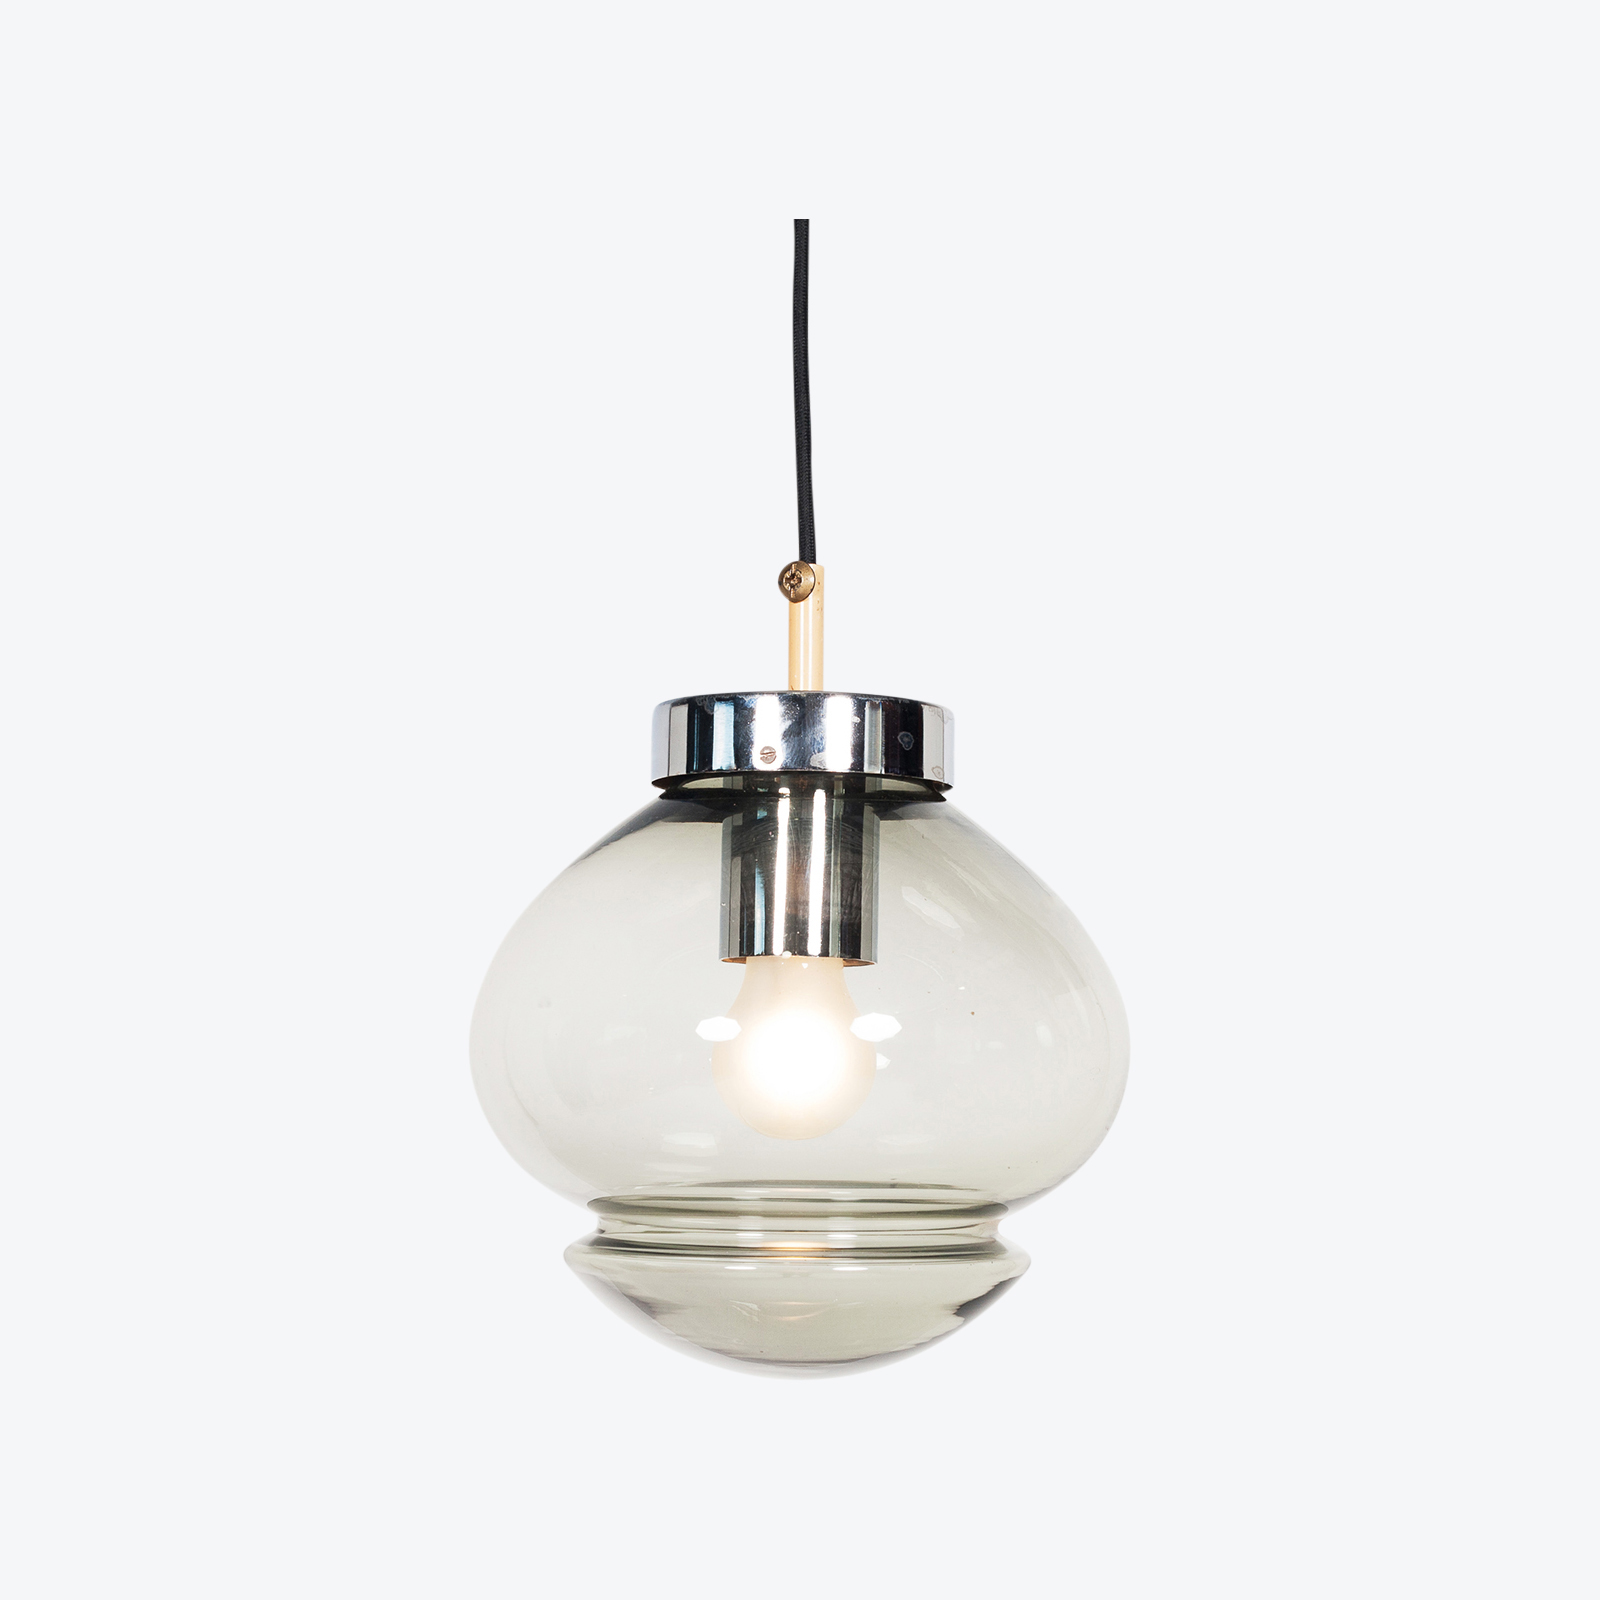 Pendant By Raak In Smoked Glass, 1970s, The Netherlands Hero